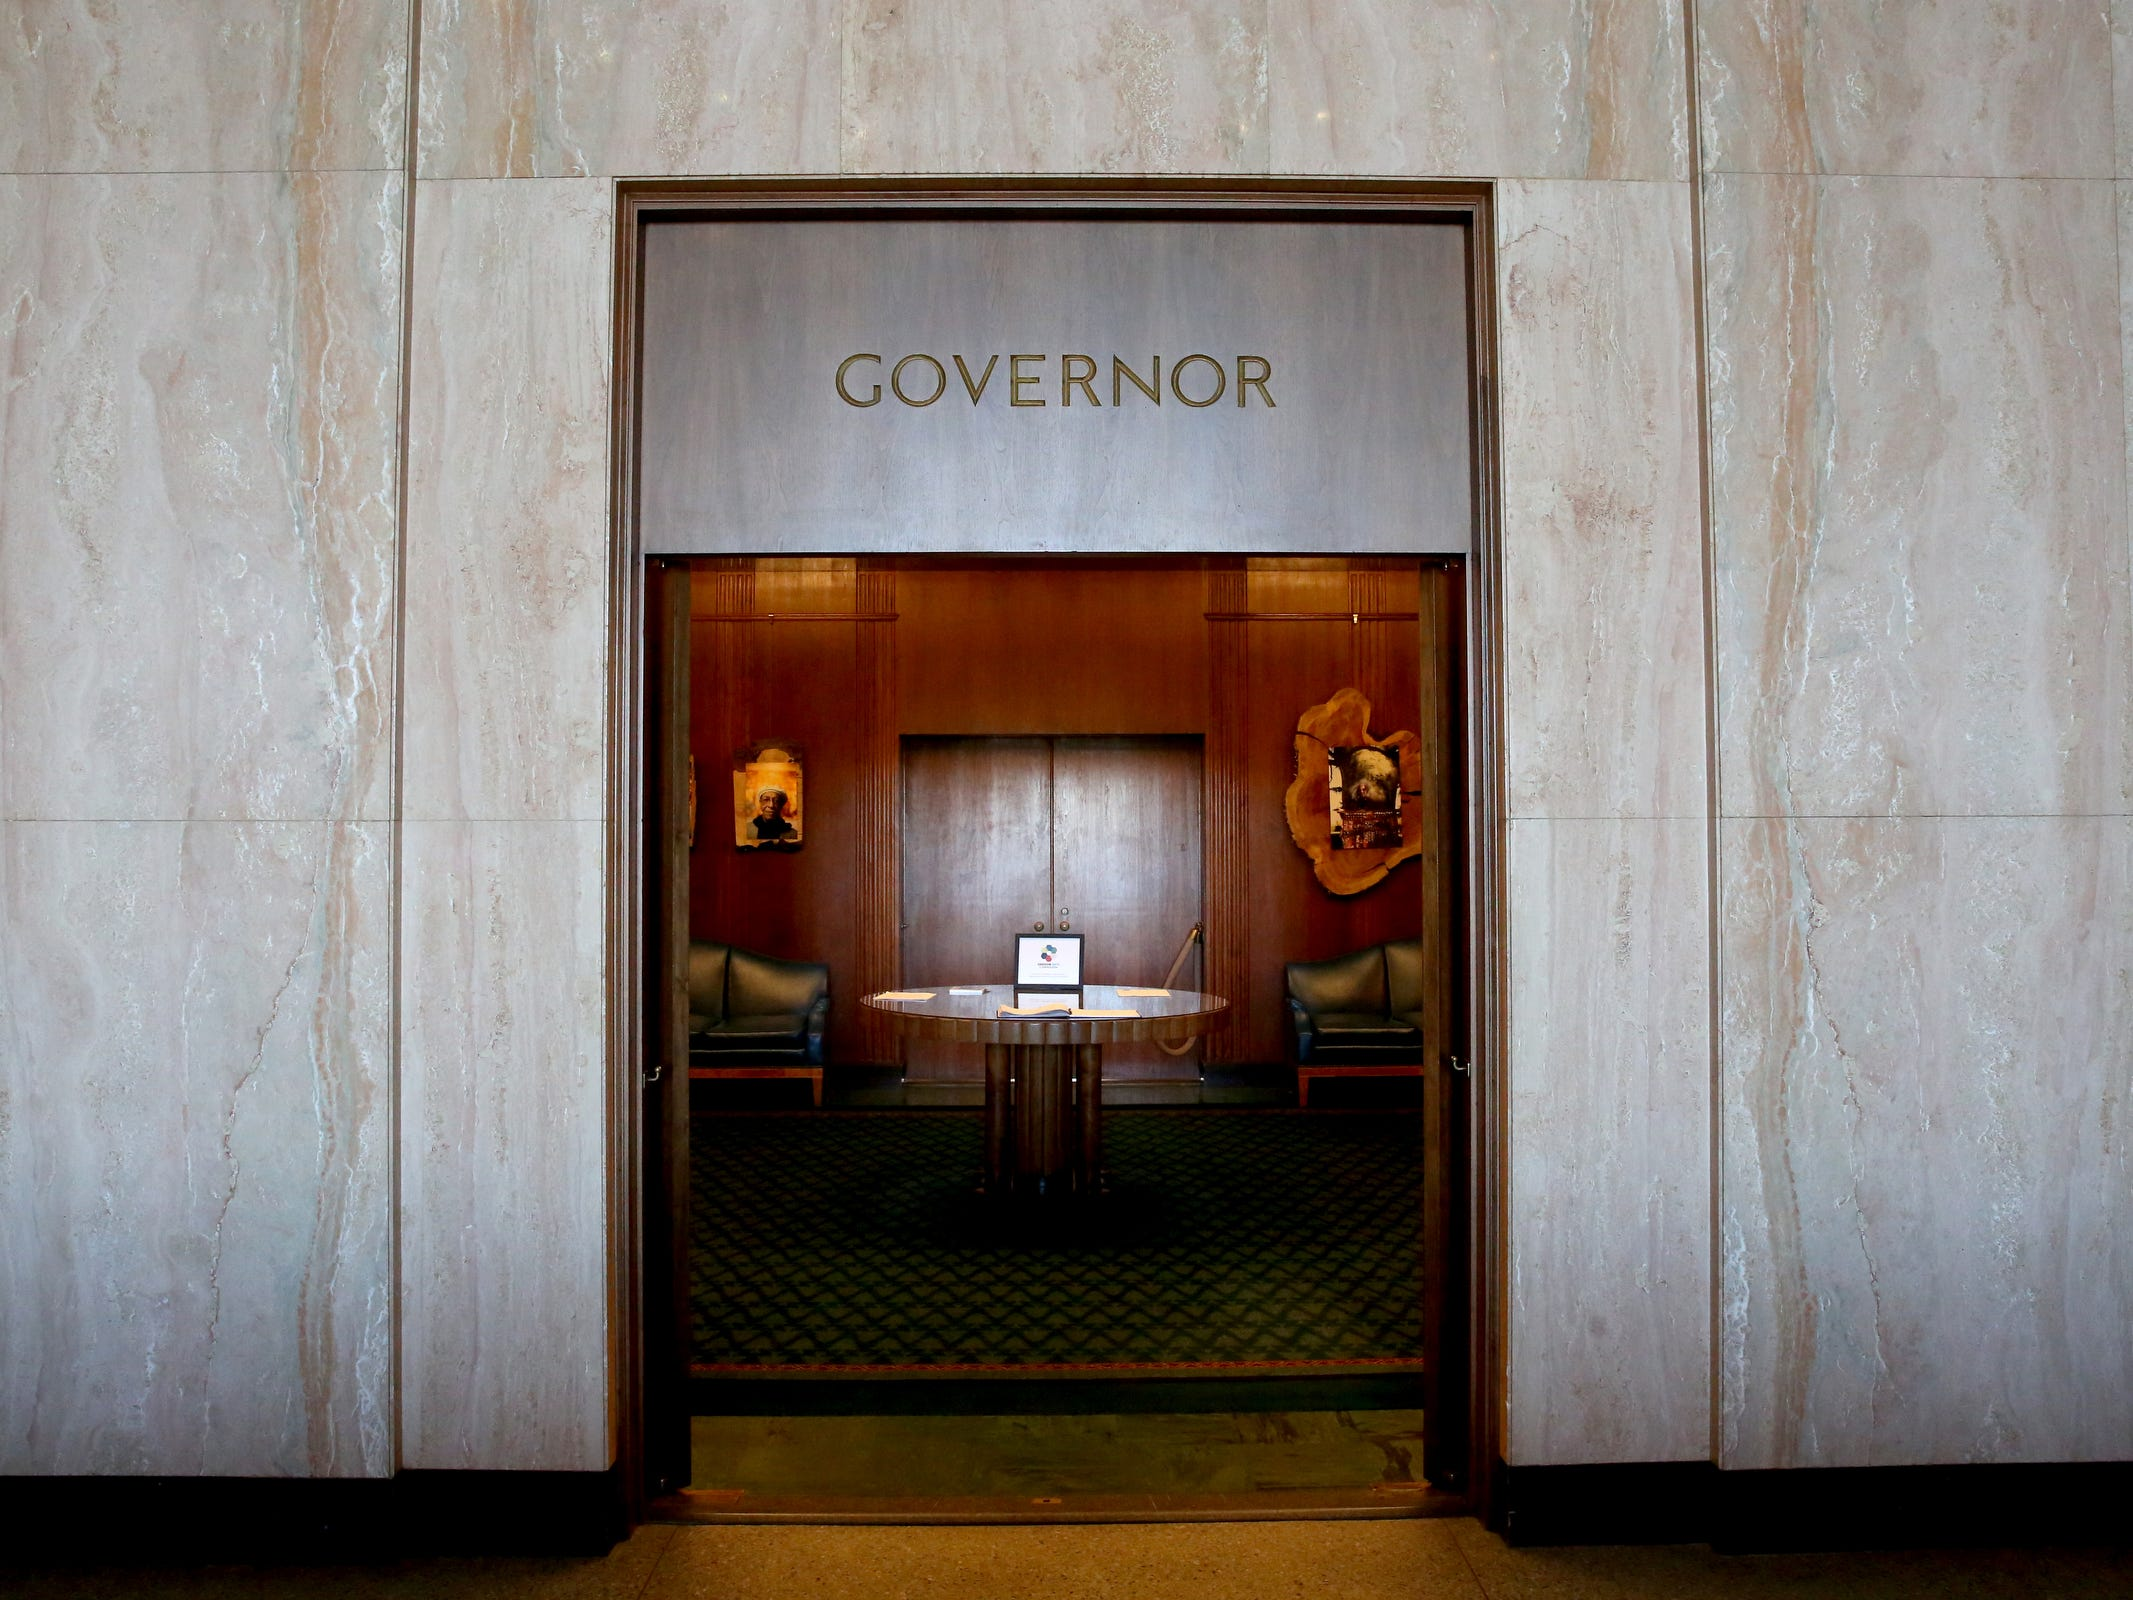 The Governor's Office at the Oregon State Capitol in Salem on Tuesday, Feb. 26, 2019.